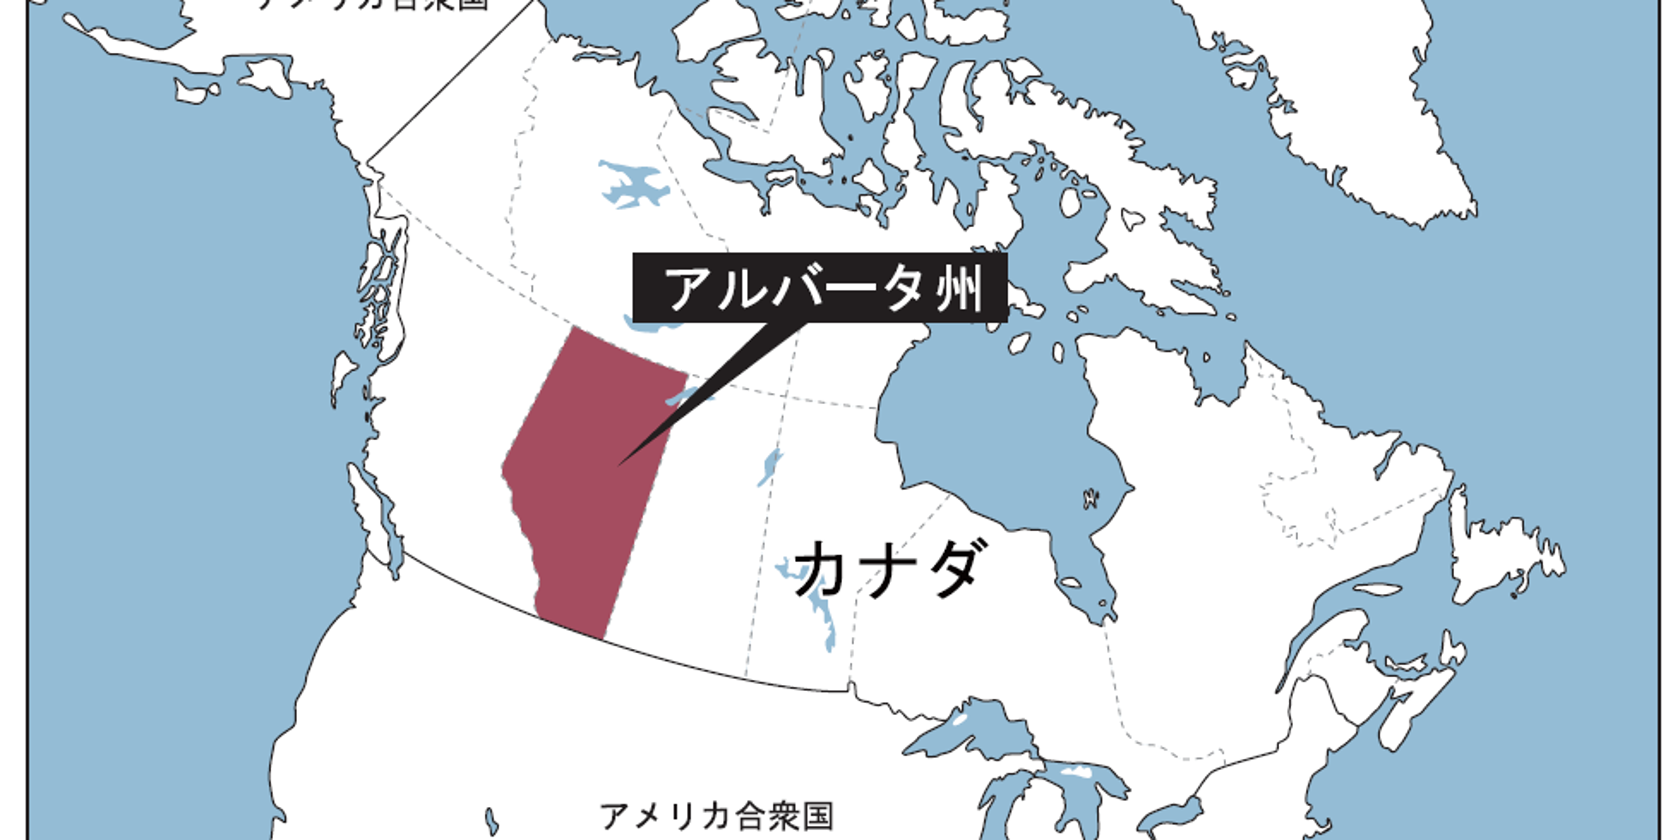 Canada Builds Petrochemical Presence With Rich Natural Gas Reserves – Part 1